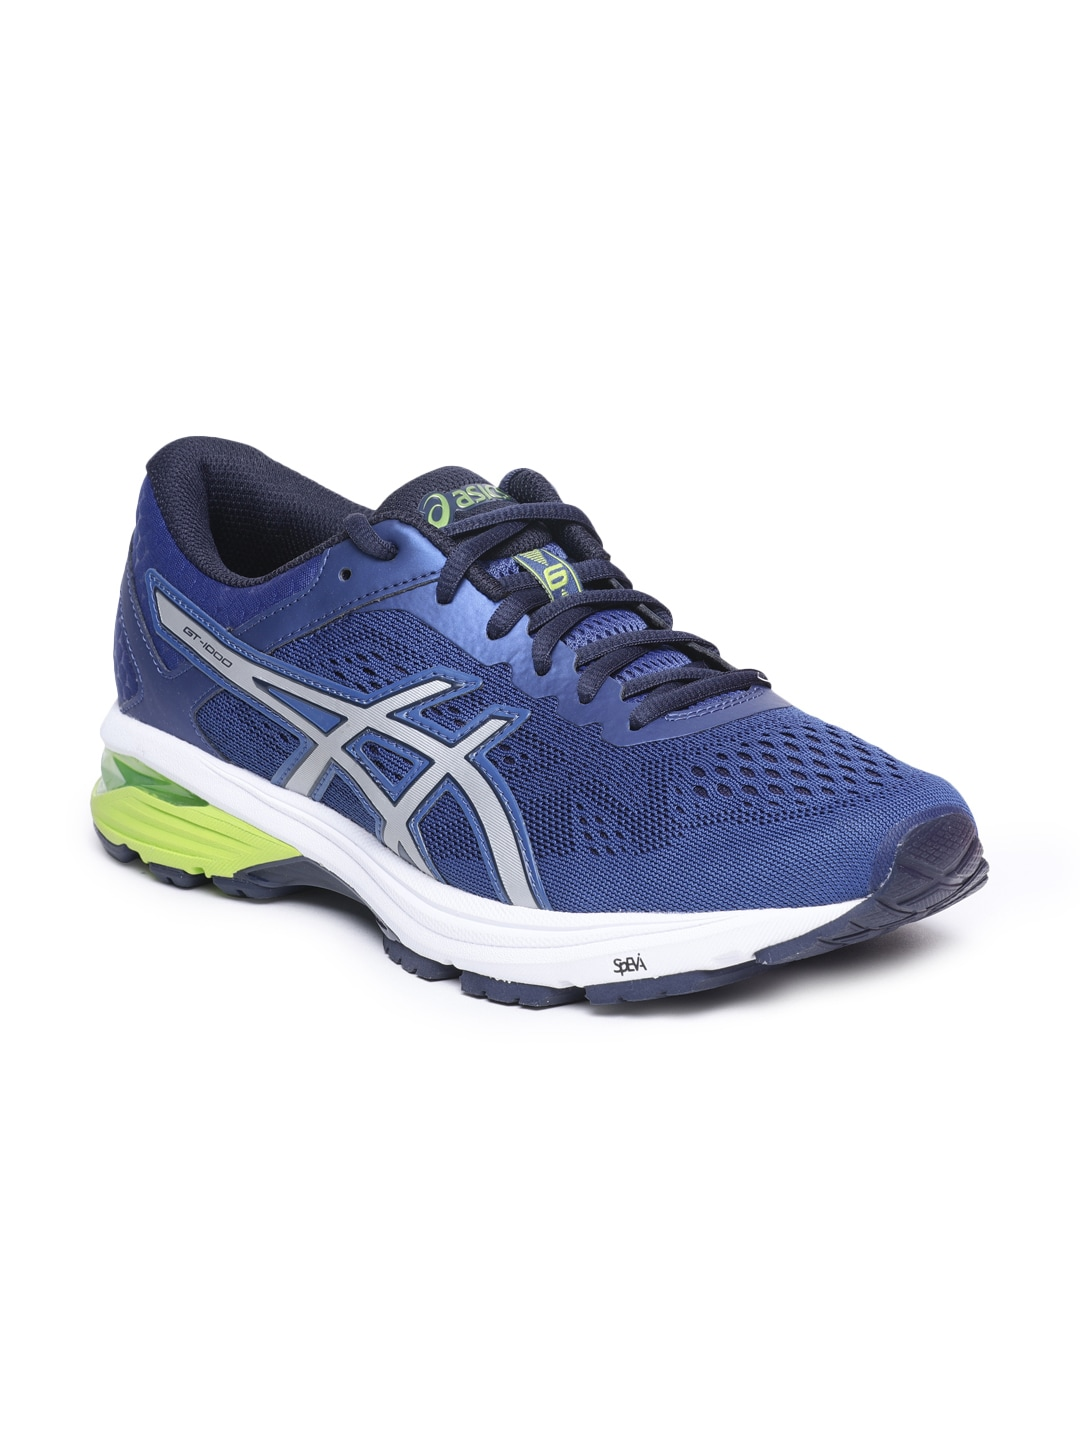 0979ec2e894 Men Footwear - Buy Mens Footwear   Shoes Online in India - Myntra